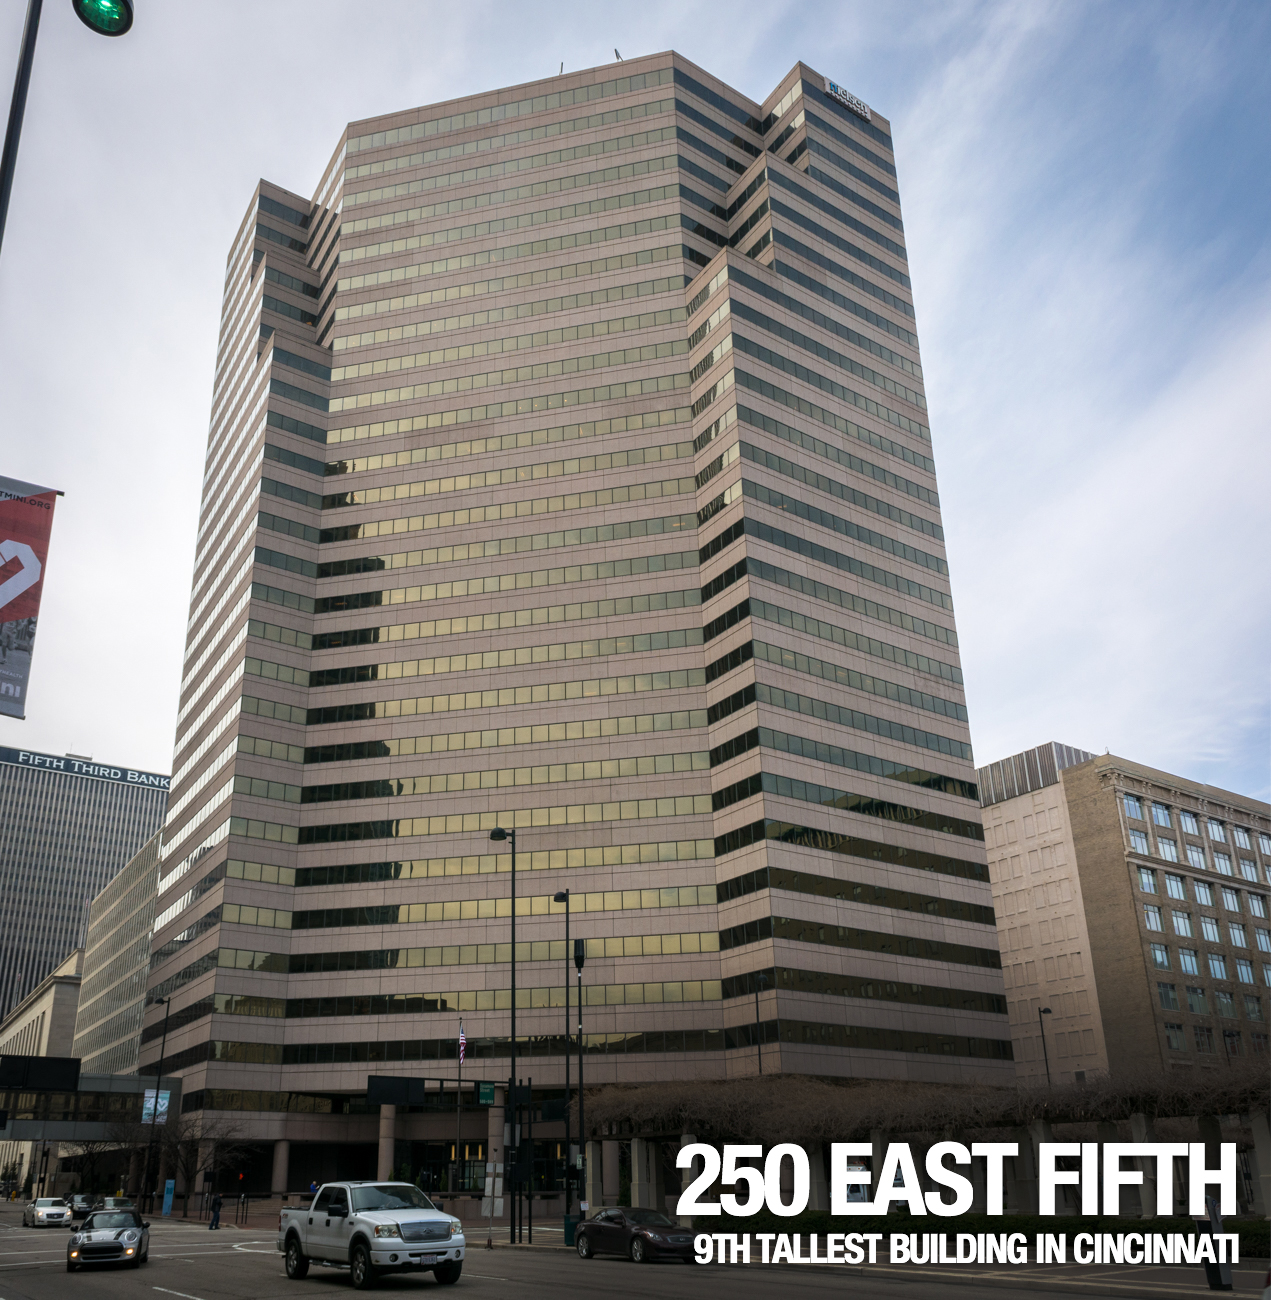 250 East Fifth: 368 feet tall, 29 floors, built in 1984 / Image: Phil Armstrong, Cincinnati Refined // Published: 2.21.17